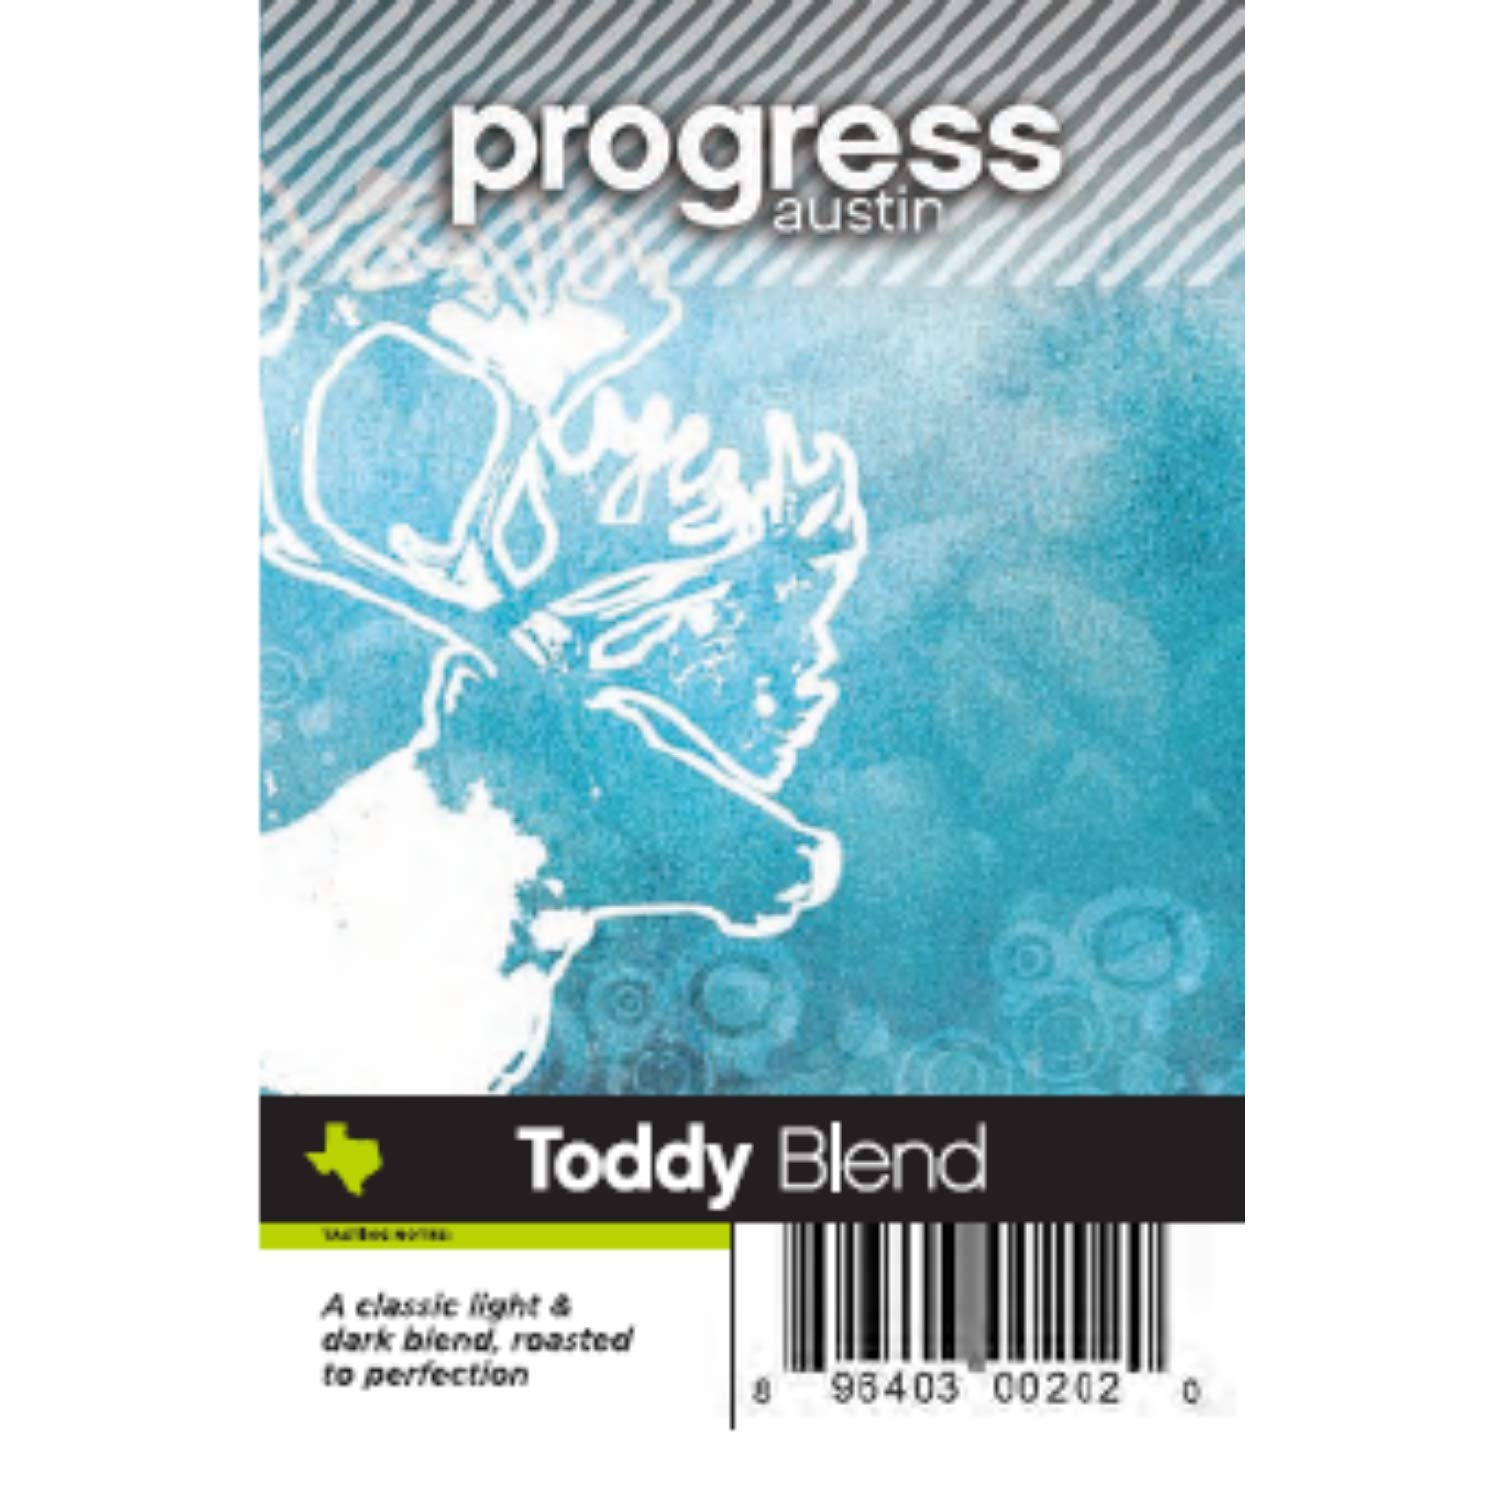 Progress Austin Cold Brew Toddy Blend Coffee Gourmet Grocery Food Beverages Organic Fresh Ground Whole Bean Coffee Bag Chocolate Light Berry Flavors - 12 Oz